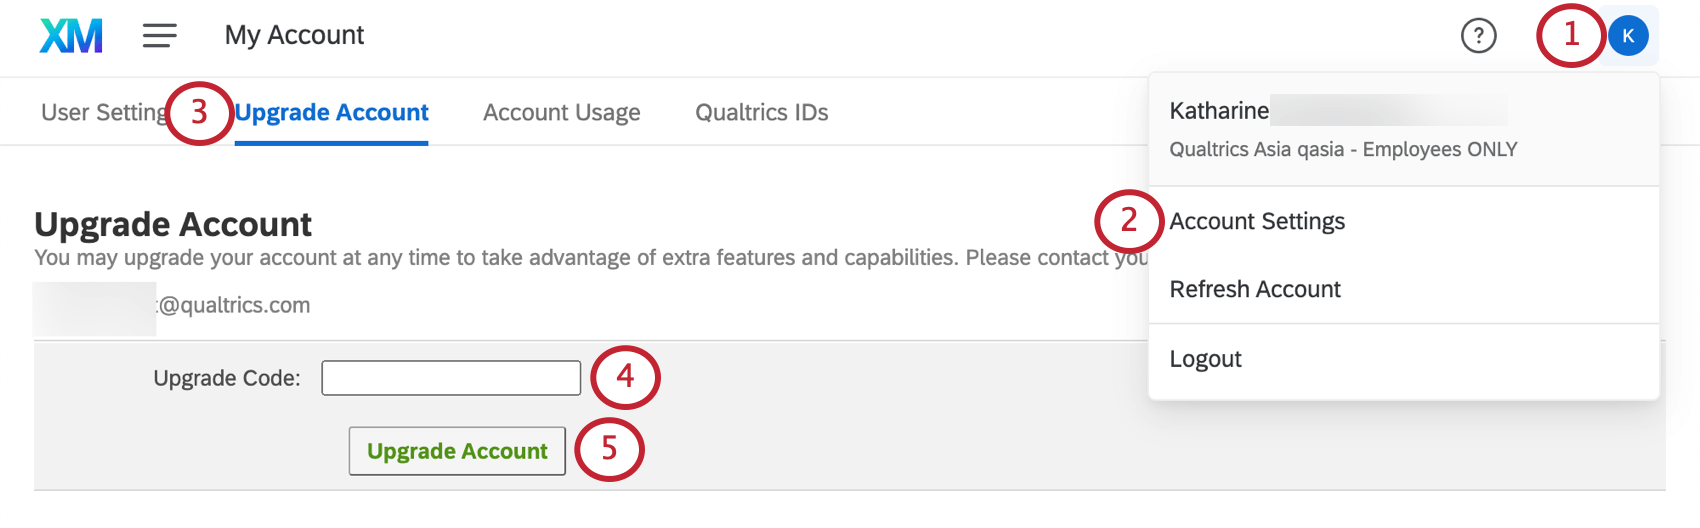 Upgrade Account tab within Account Settings page accessed through upper-right dropdown